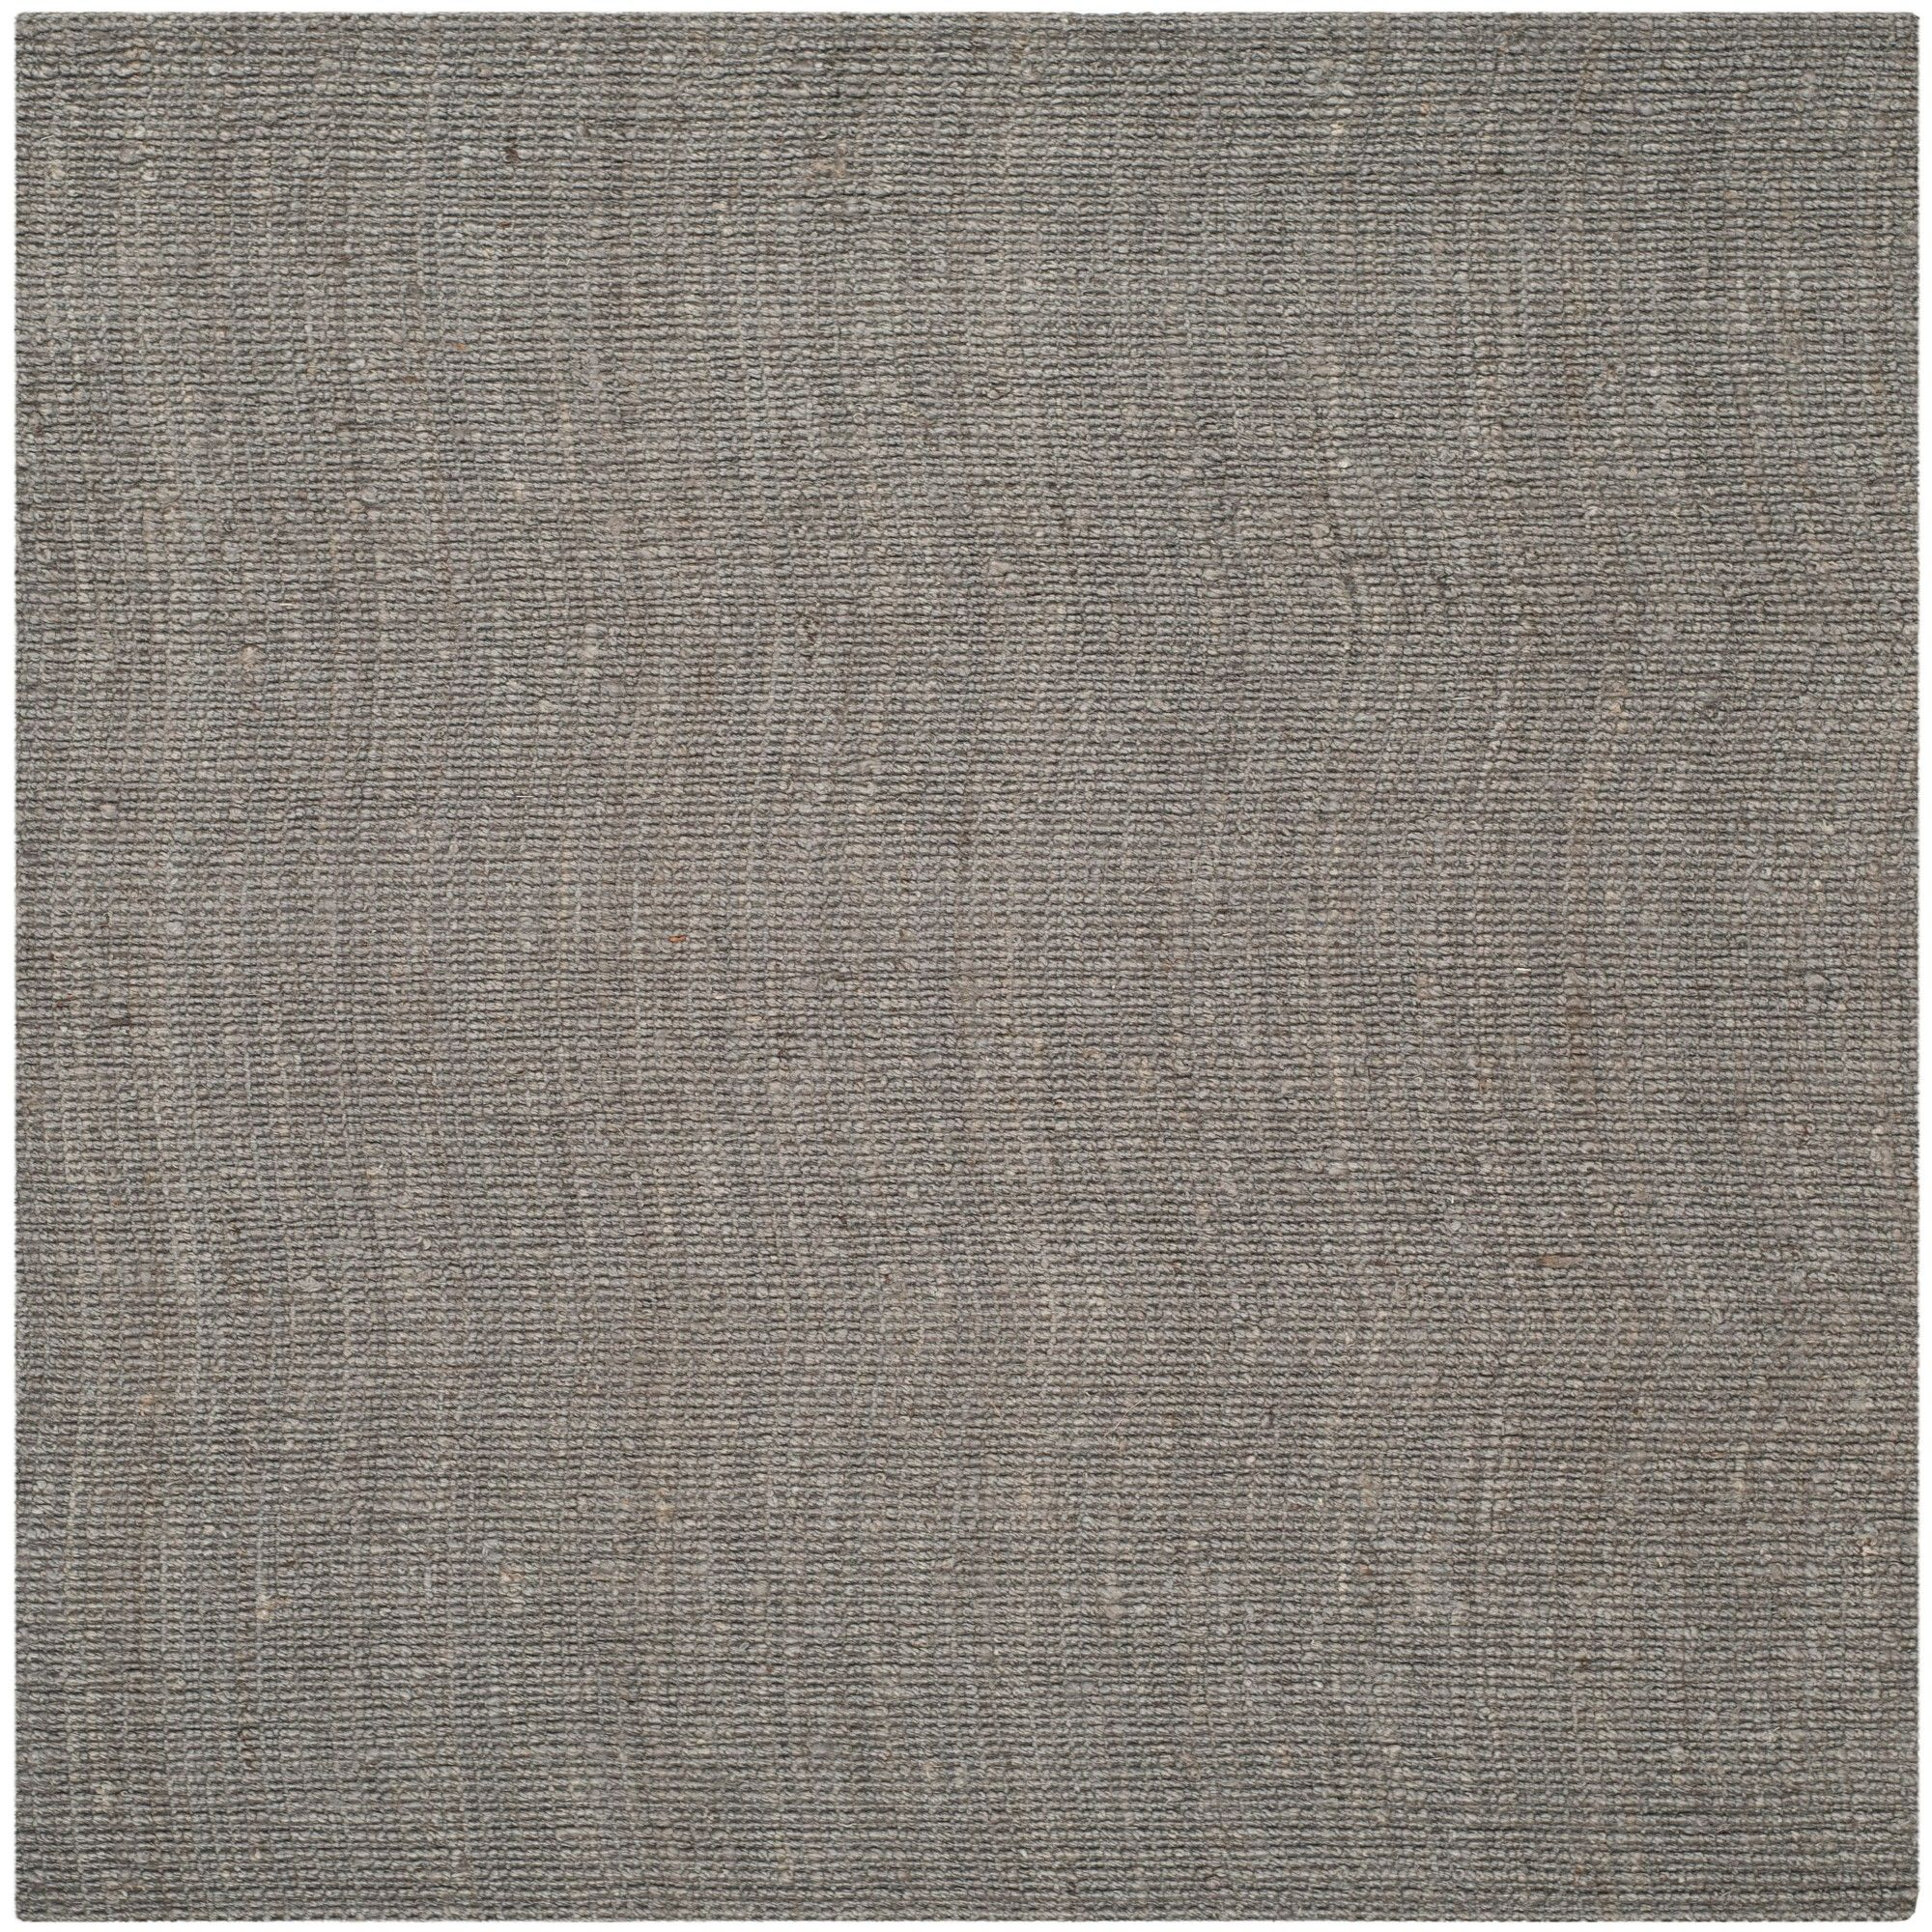 10 X10 Solid Woven Square Area Rug Light Gray Safavieh Natural Fiber Rugs Area Rugs